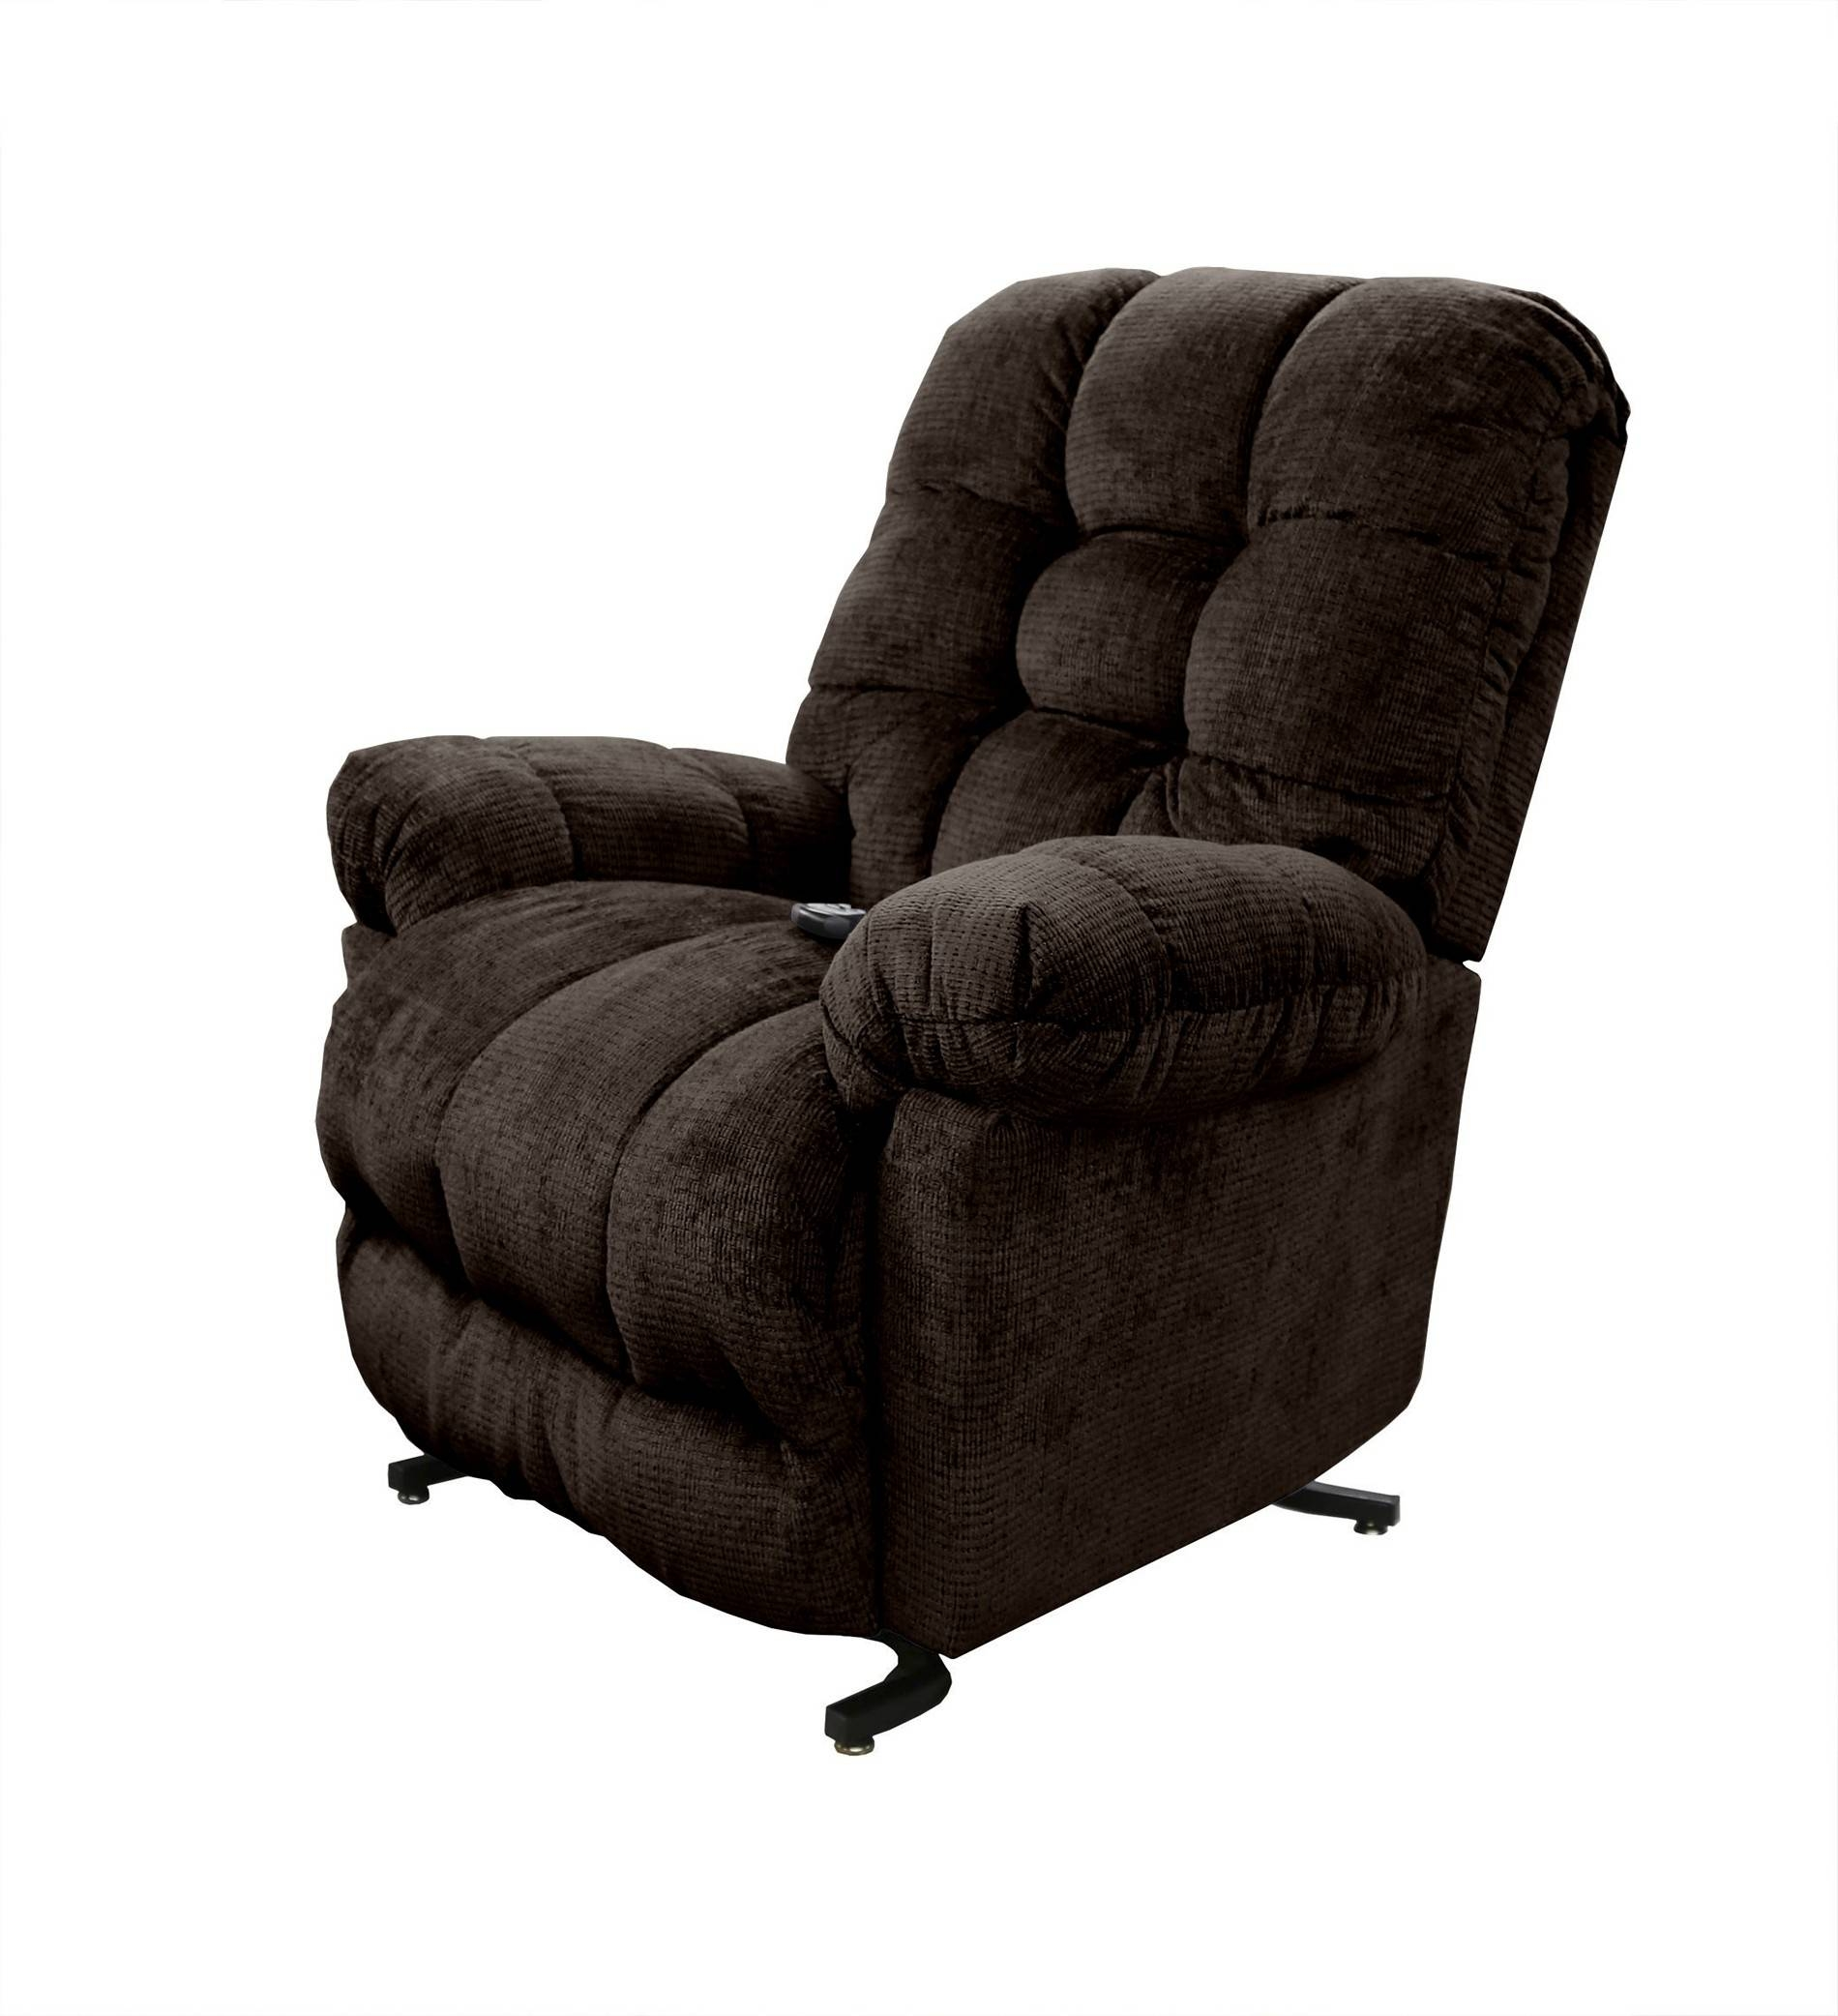 Sofas Center : Unusual Sears Reclining Sofa Images Design Recliner with regard to Unusual Sofa (Image 14 of 23)